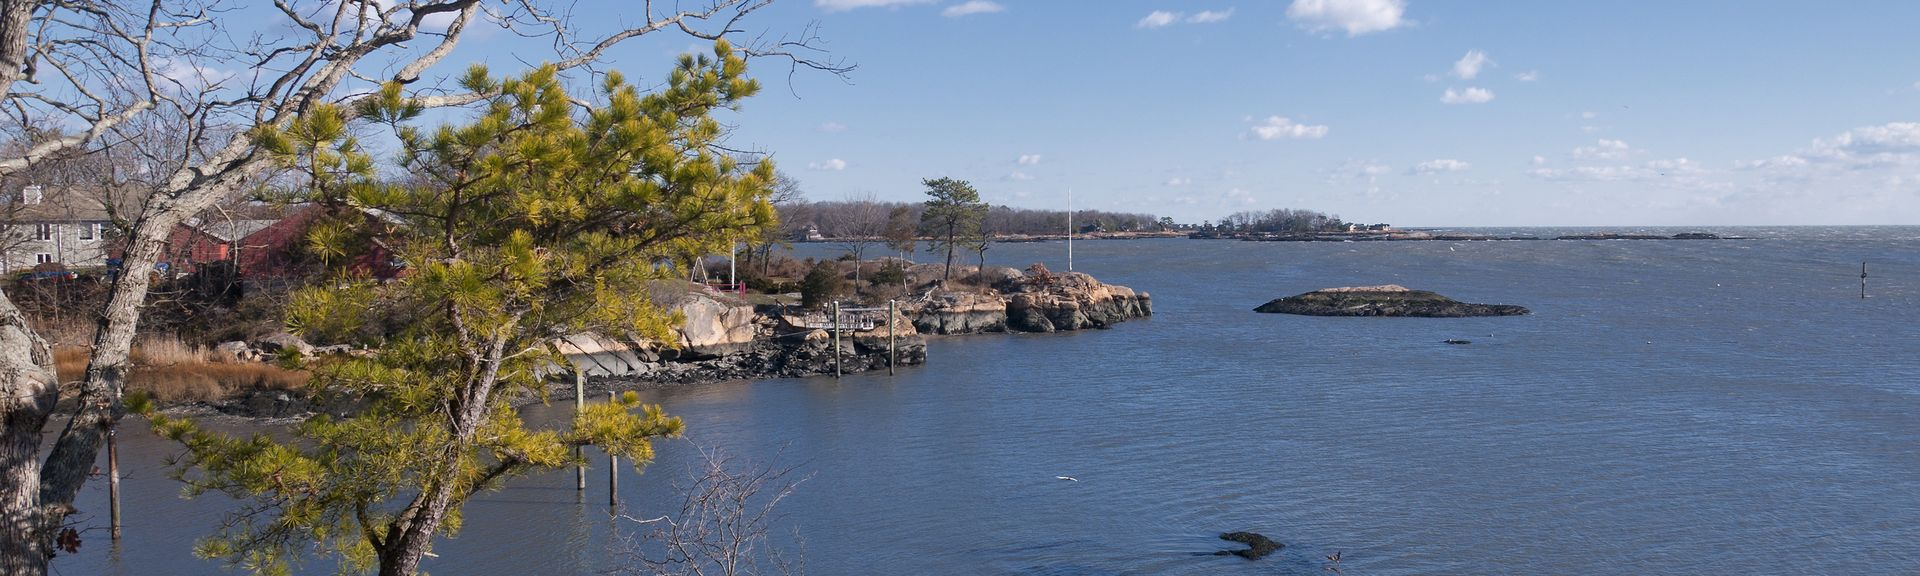 Branford, CT, USA